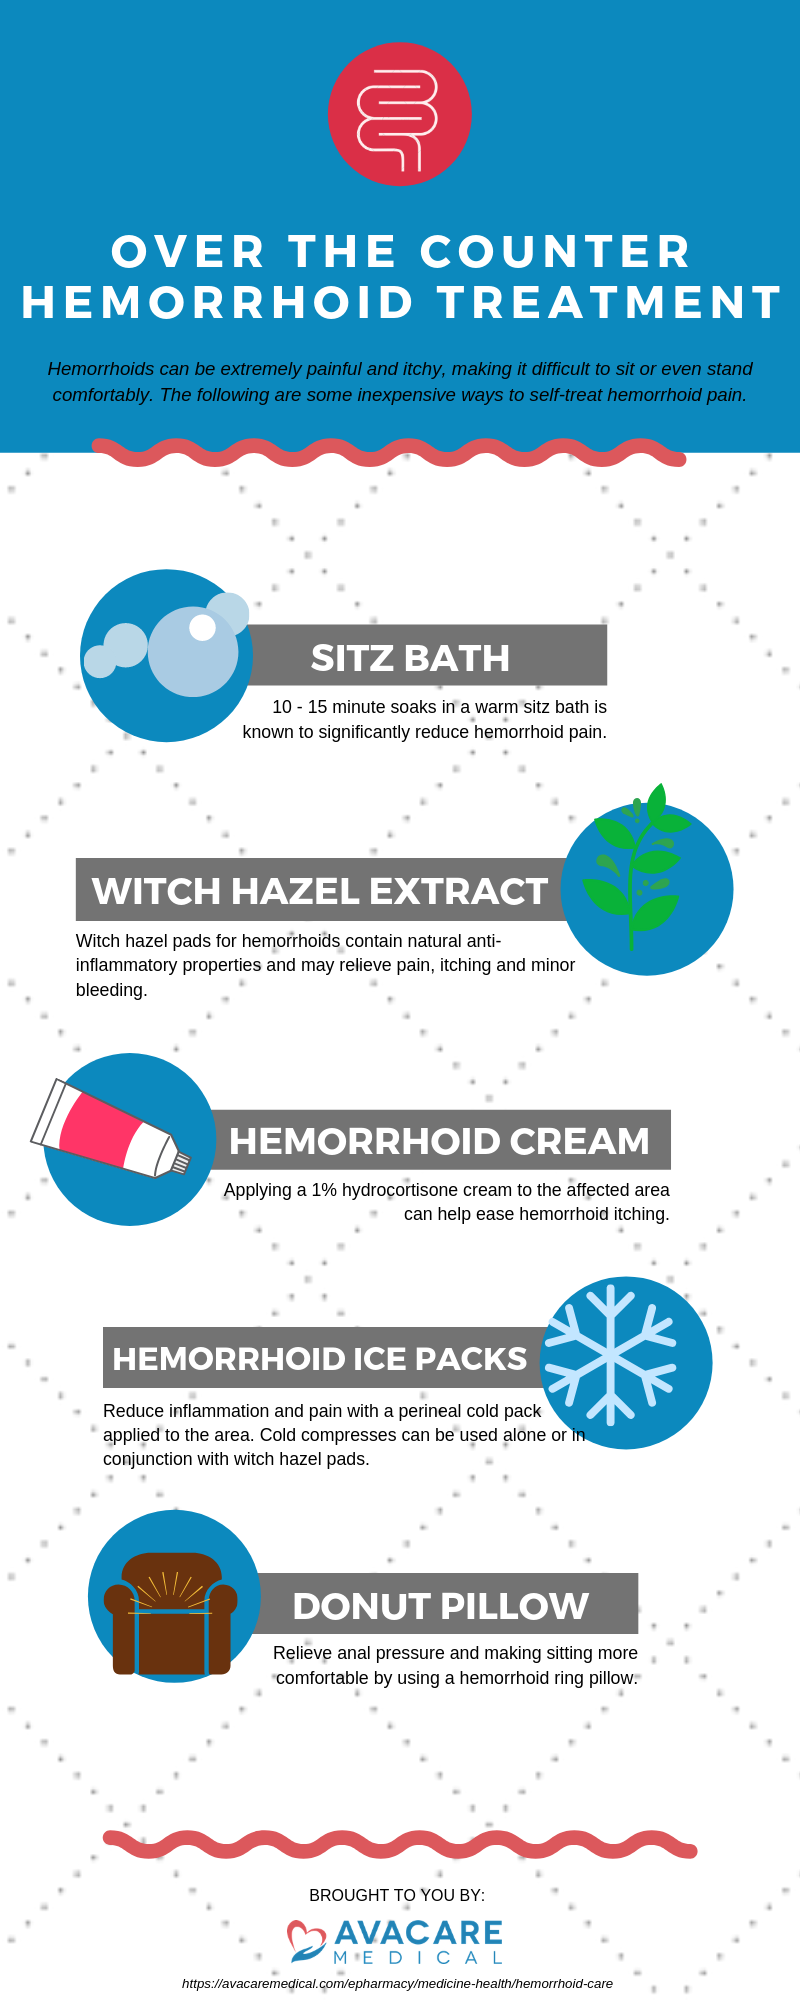 OVER THE COUNTER HEMORRHOID TREATMENT | Hemorrhoids can be extremely painful and itchy, making it difficult to sit or even stand comfortably. The following are some inexpensive ways to self-treat hemorrhoid pain. | Pain Relief - Sitz Bath: 10 - 15 minute soaks in a warm sitz bath is known to significantly reduce hemorrhoid pain. | Itch Relief - Hemmorhoid Cream: Applying a 1% hydrocortisone cream to the affected area can help ease hemorrhoid itching. | Inflammation Reduction - Witch Hazel Extract: Witch hazel pads for hemorrhoids contain natural anti-inflammatory properties and may relieve pain, itching and minor bleeding. | Inflammation Reduction – Hemorrhoid Ice Packs: Reduce inflammation and pain with a perineal cold pack applied to the area. Cold compresses can be used alone or in conjunction with witch hazel pads. | Seated Relief - Donut Pillow: Relieve anal pressure and making sitting more comfortable by using a hemorrhoid ring pillow.